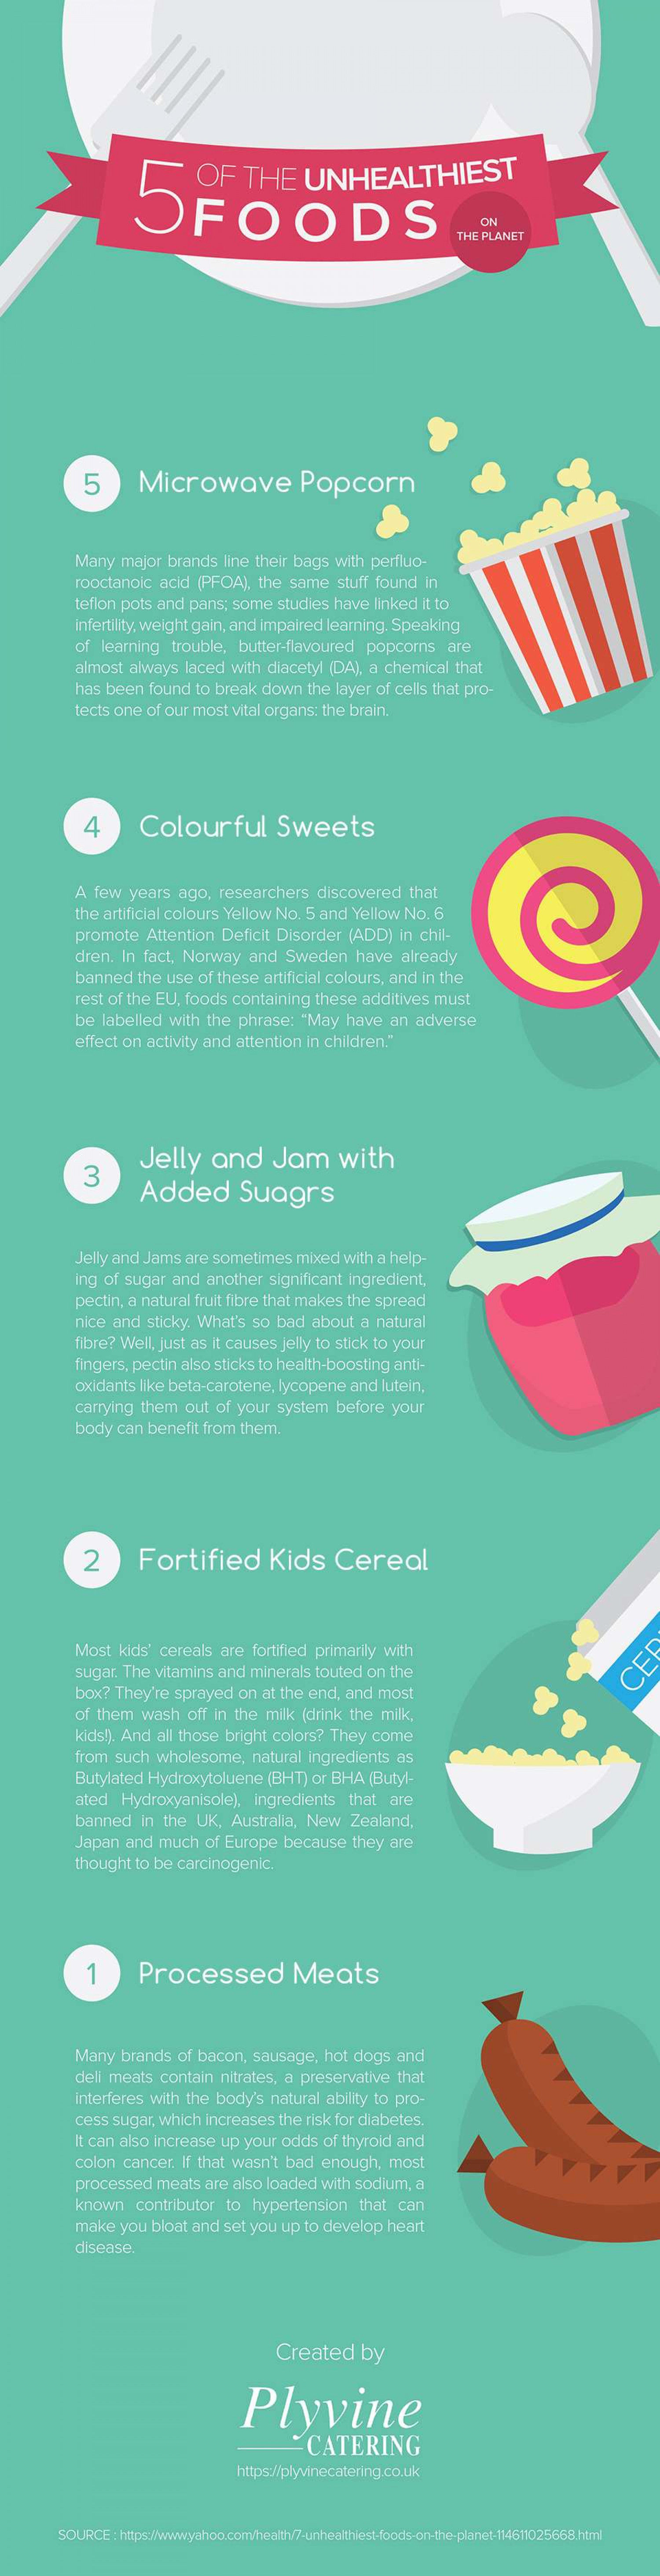 5 of the Unhealthiest Foods on the Planet Infographic